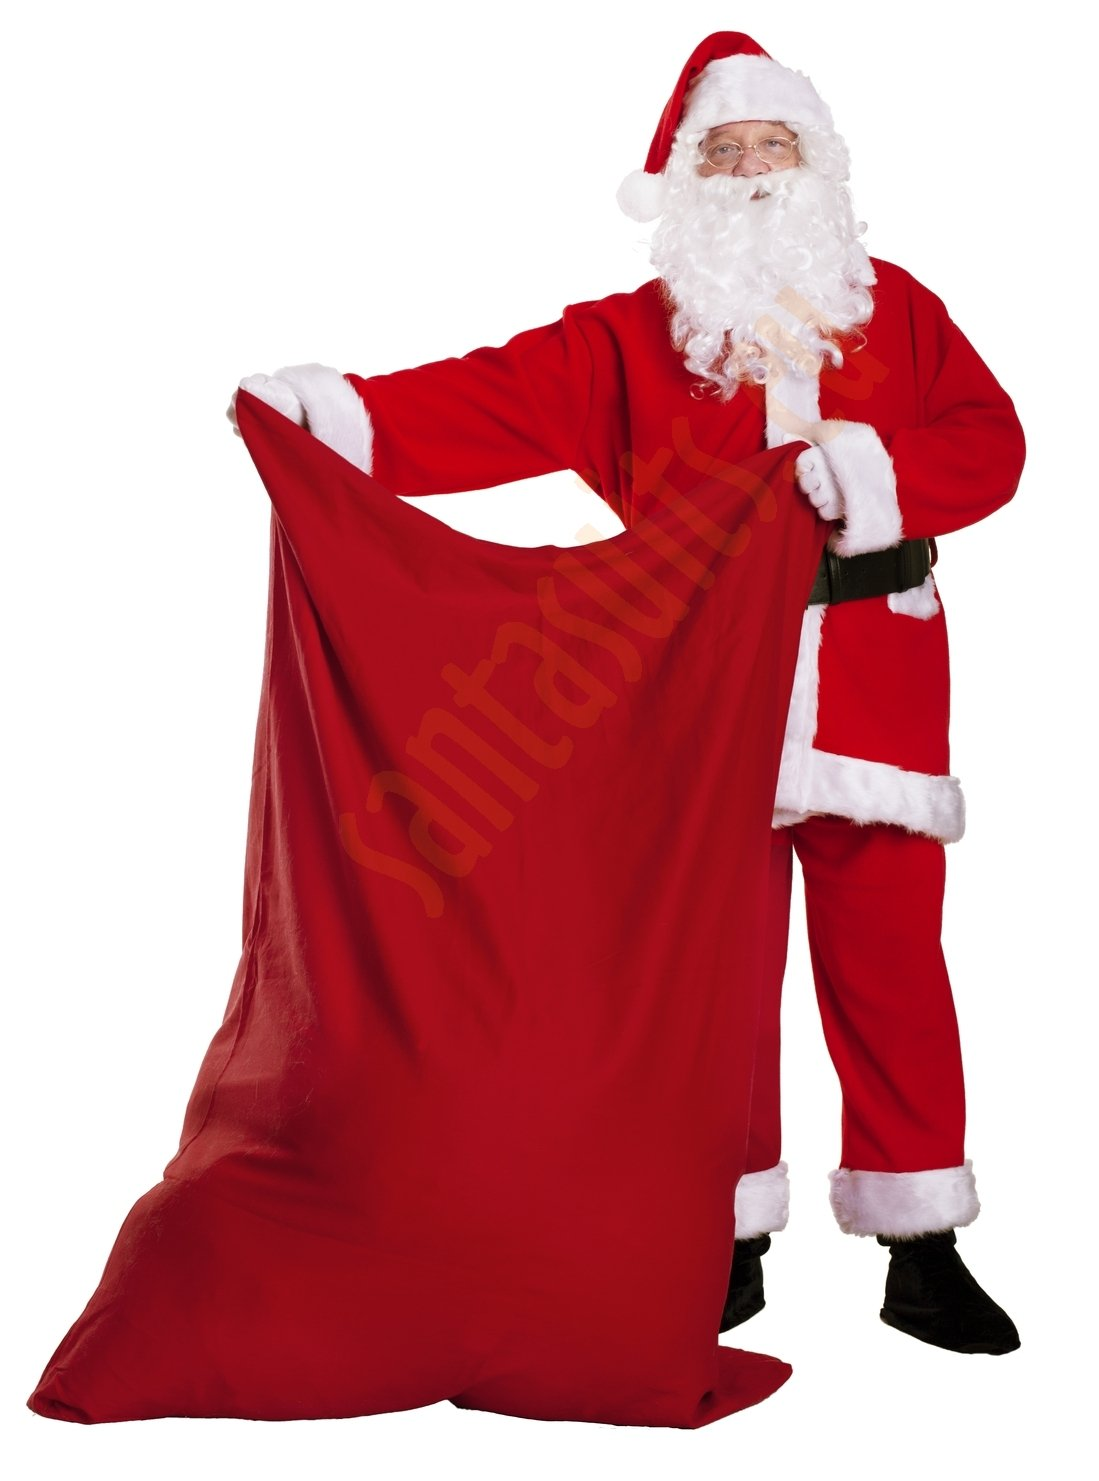 santa suit with jacket and sack big red sack for presents - Santa Claus Red